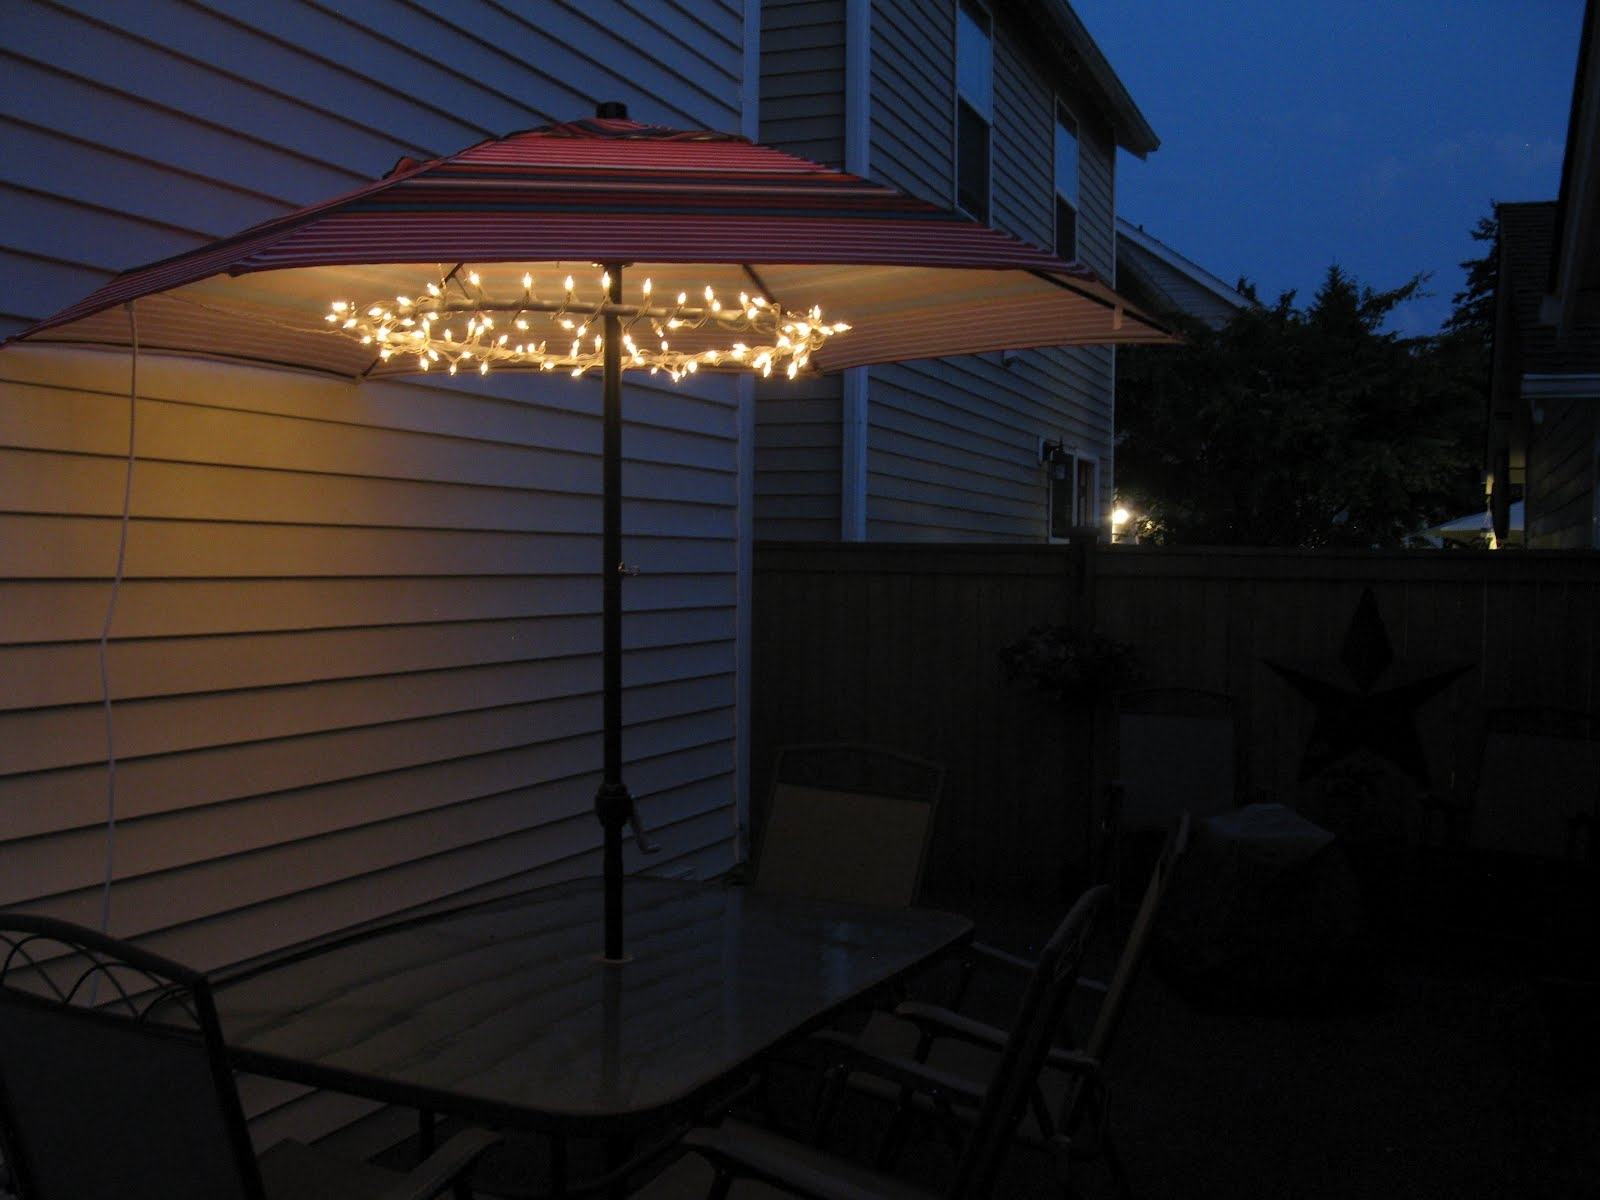 Amazing Patio Umbrella Lights — Wilson Home Ideas : Beautiful Patio throughout Outdoor Battery Lanterns for Patio (Image 2 of 20)